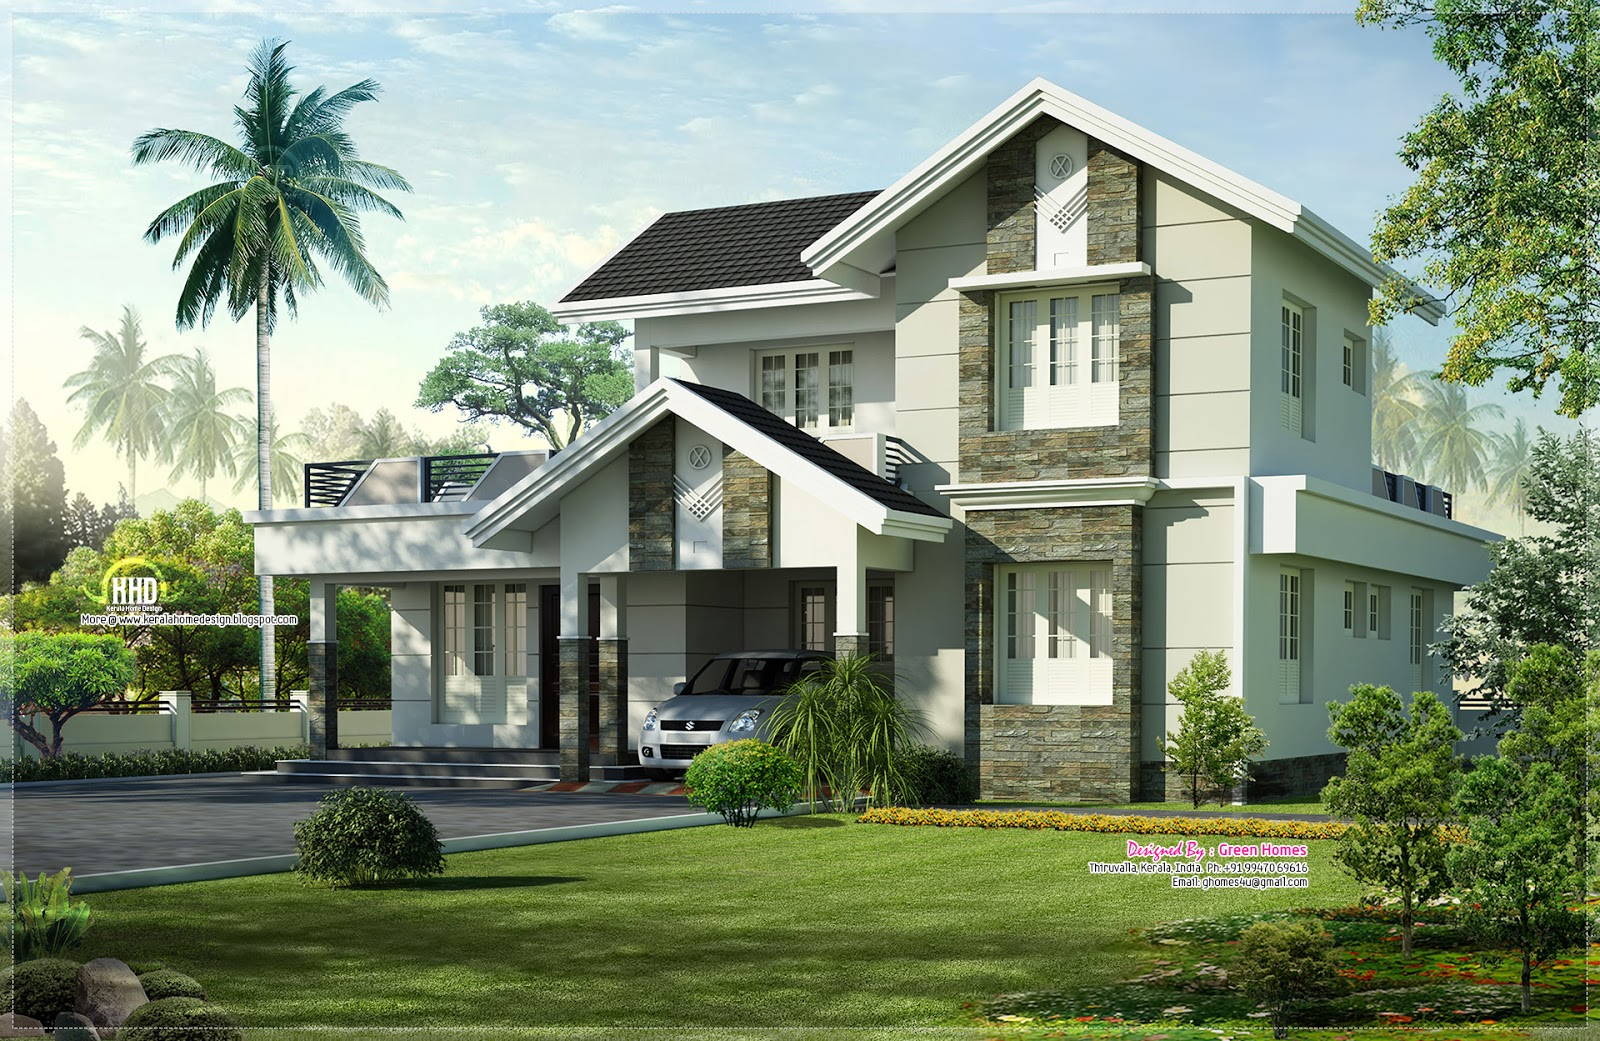 1975 sq.feet nice home exterior design | Home Kerala Plans